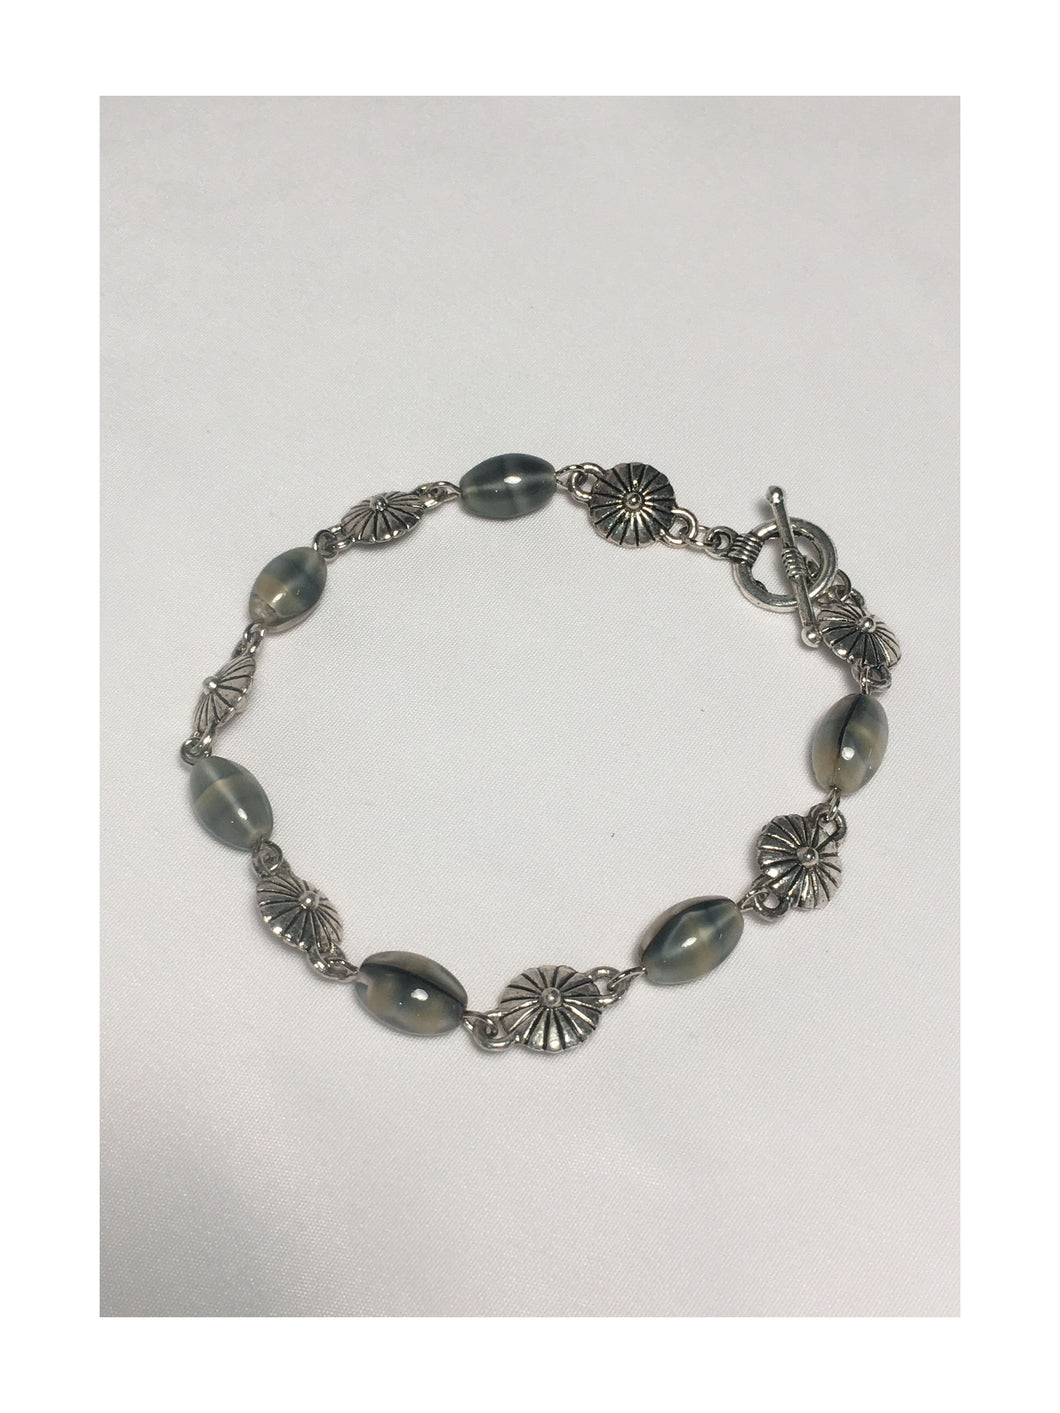 Faux Mother of Pearl Glass Bead Bracelet with Toggle Clasp